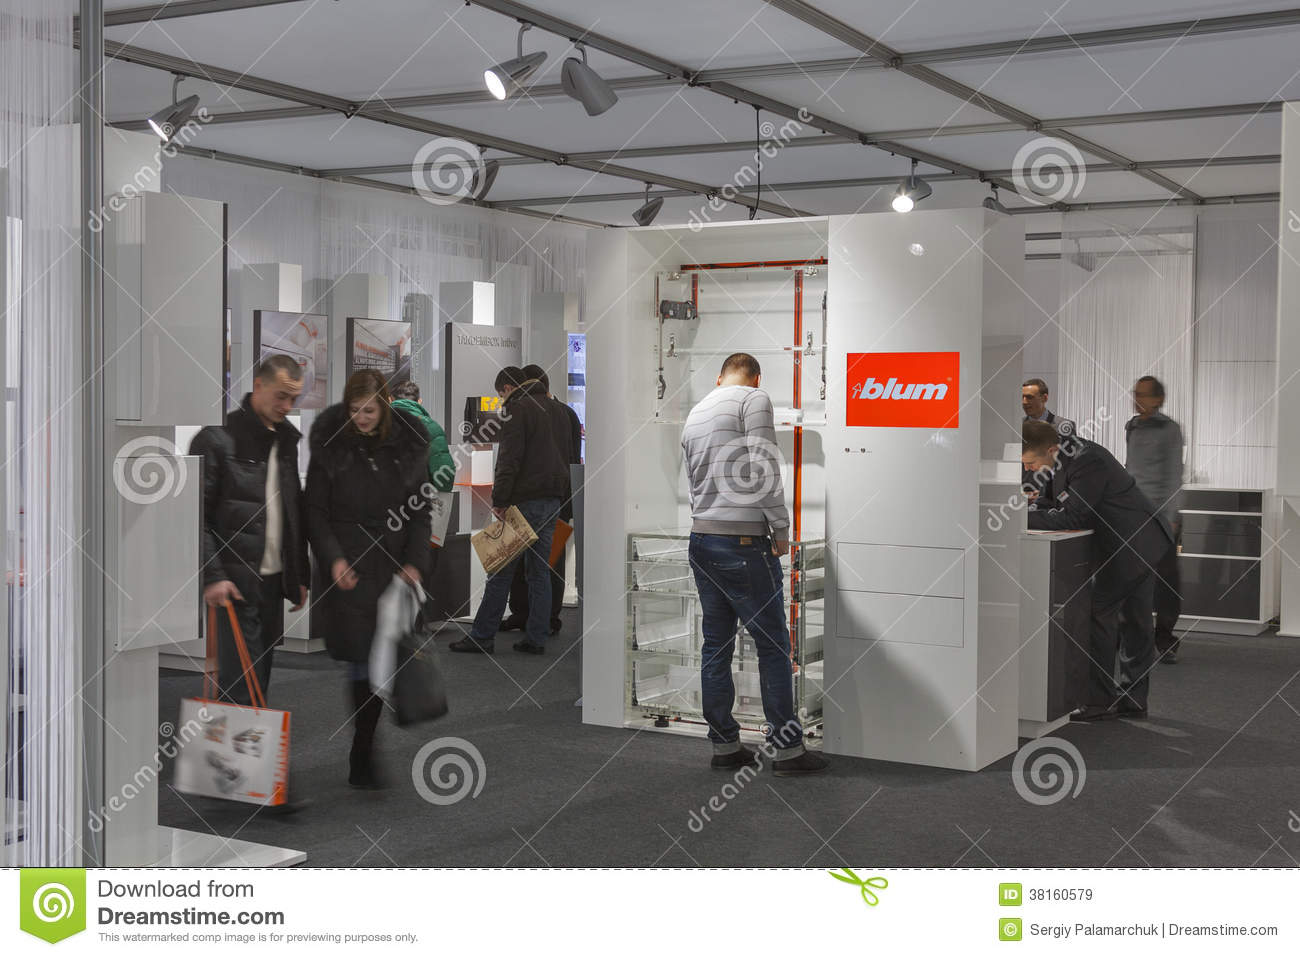 Blum Furniture Accessories Company Booth Editorial Stock